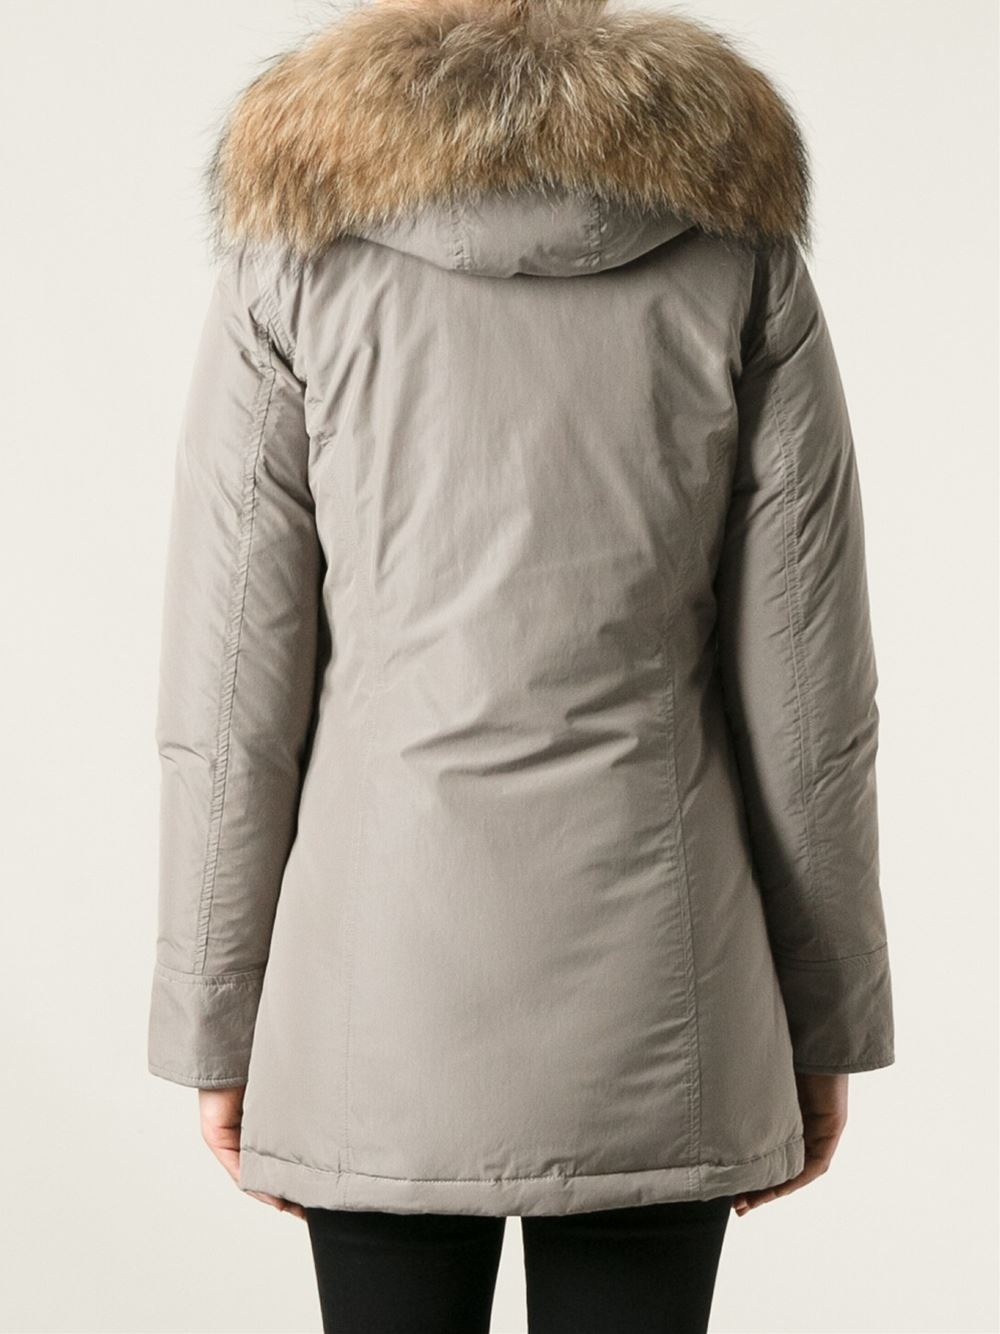 Lyst Woolrich Racoon Fur Trimmed Parka In Natural